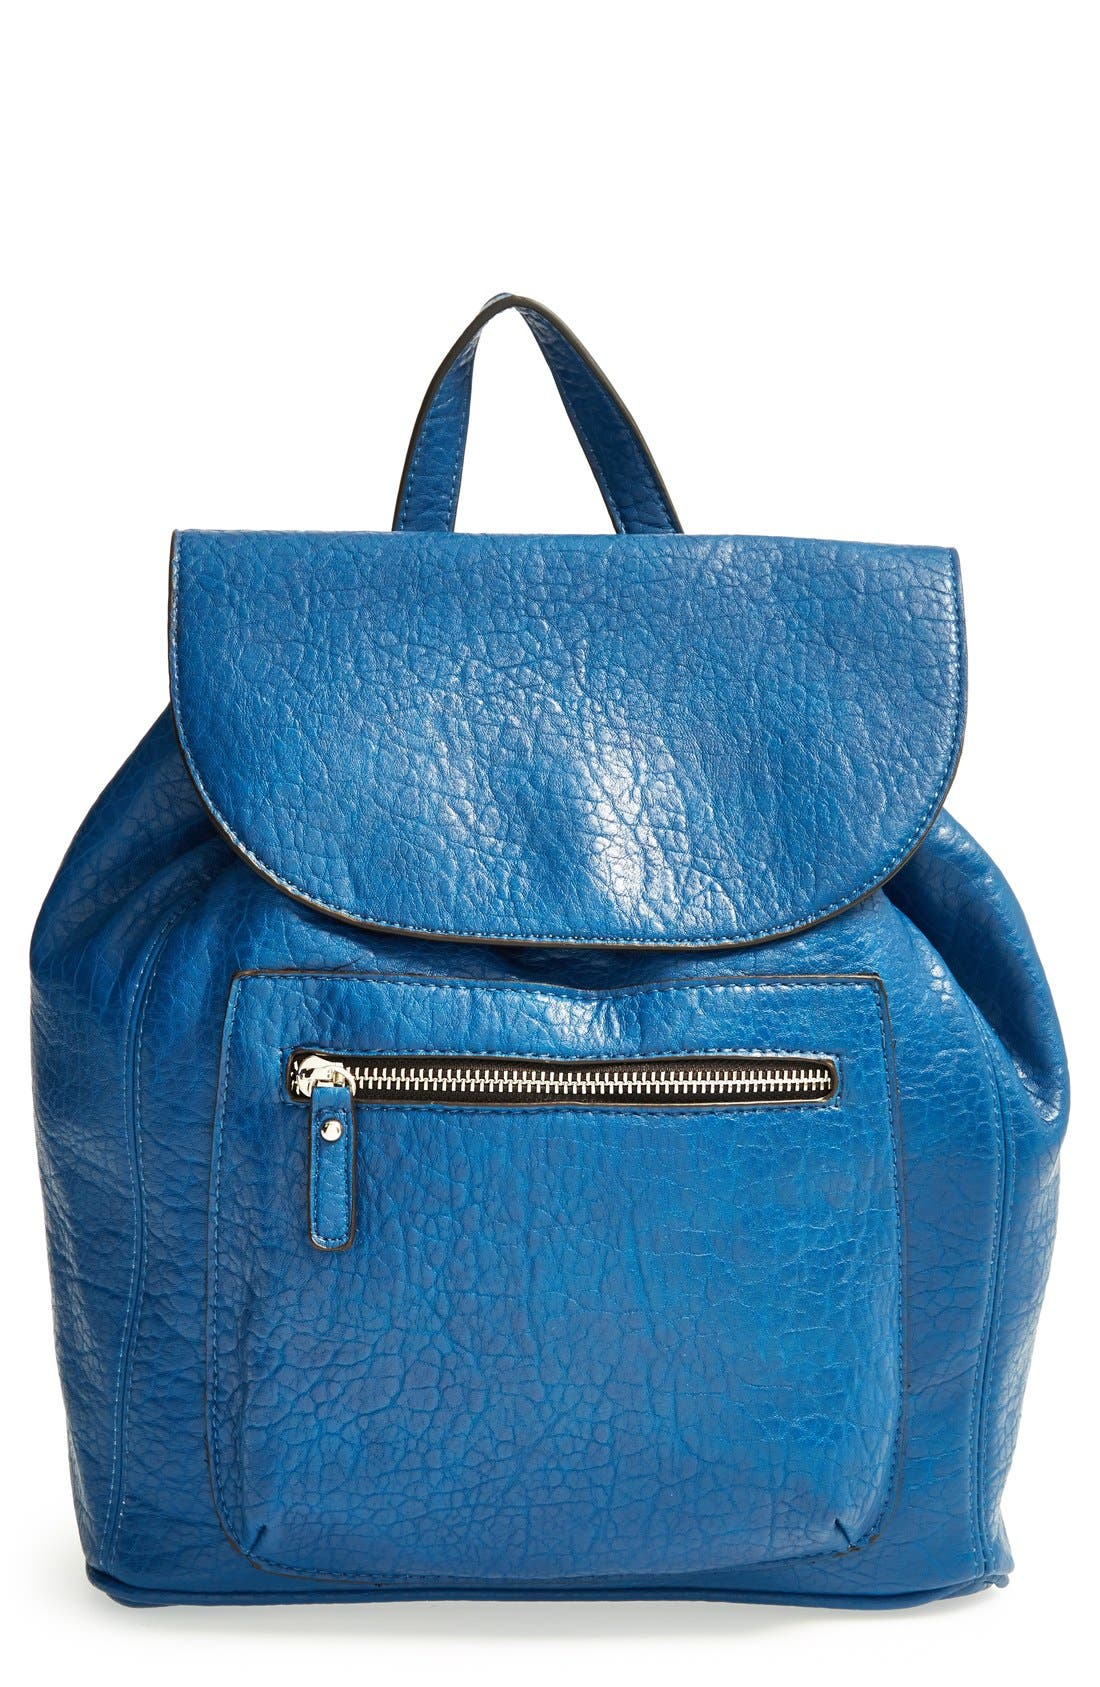 Main Image - kensie 'Perfectly Pebbled' Faux Leather Backpack